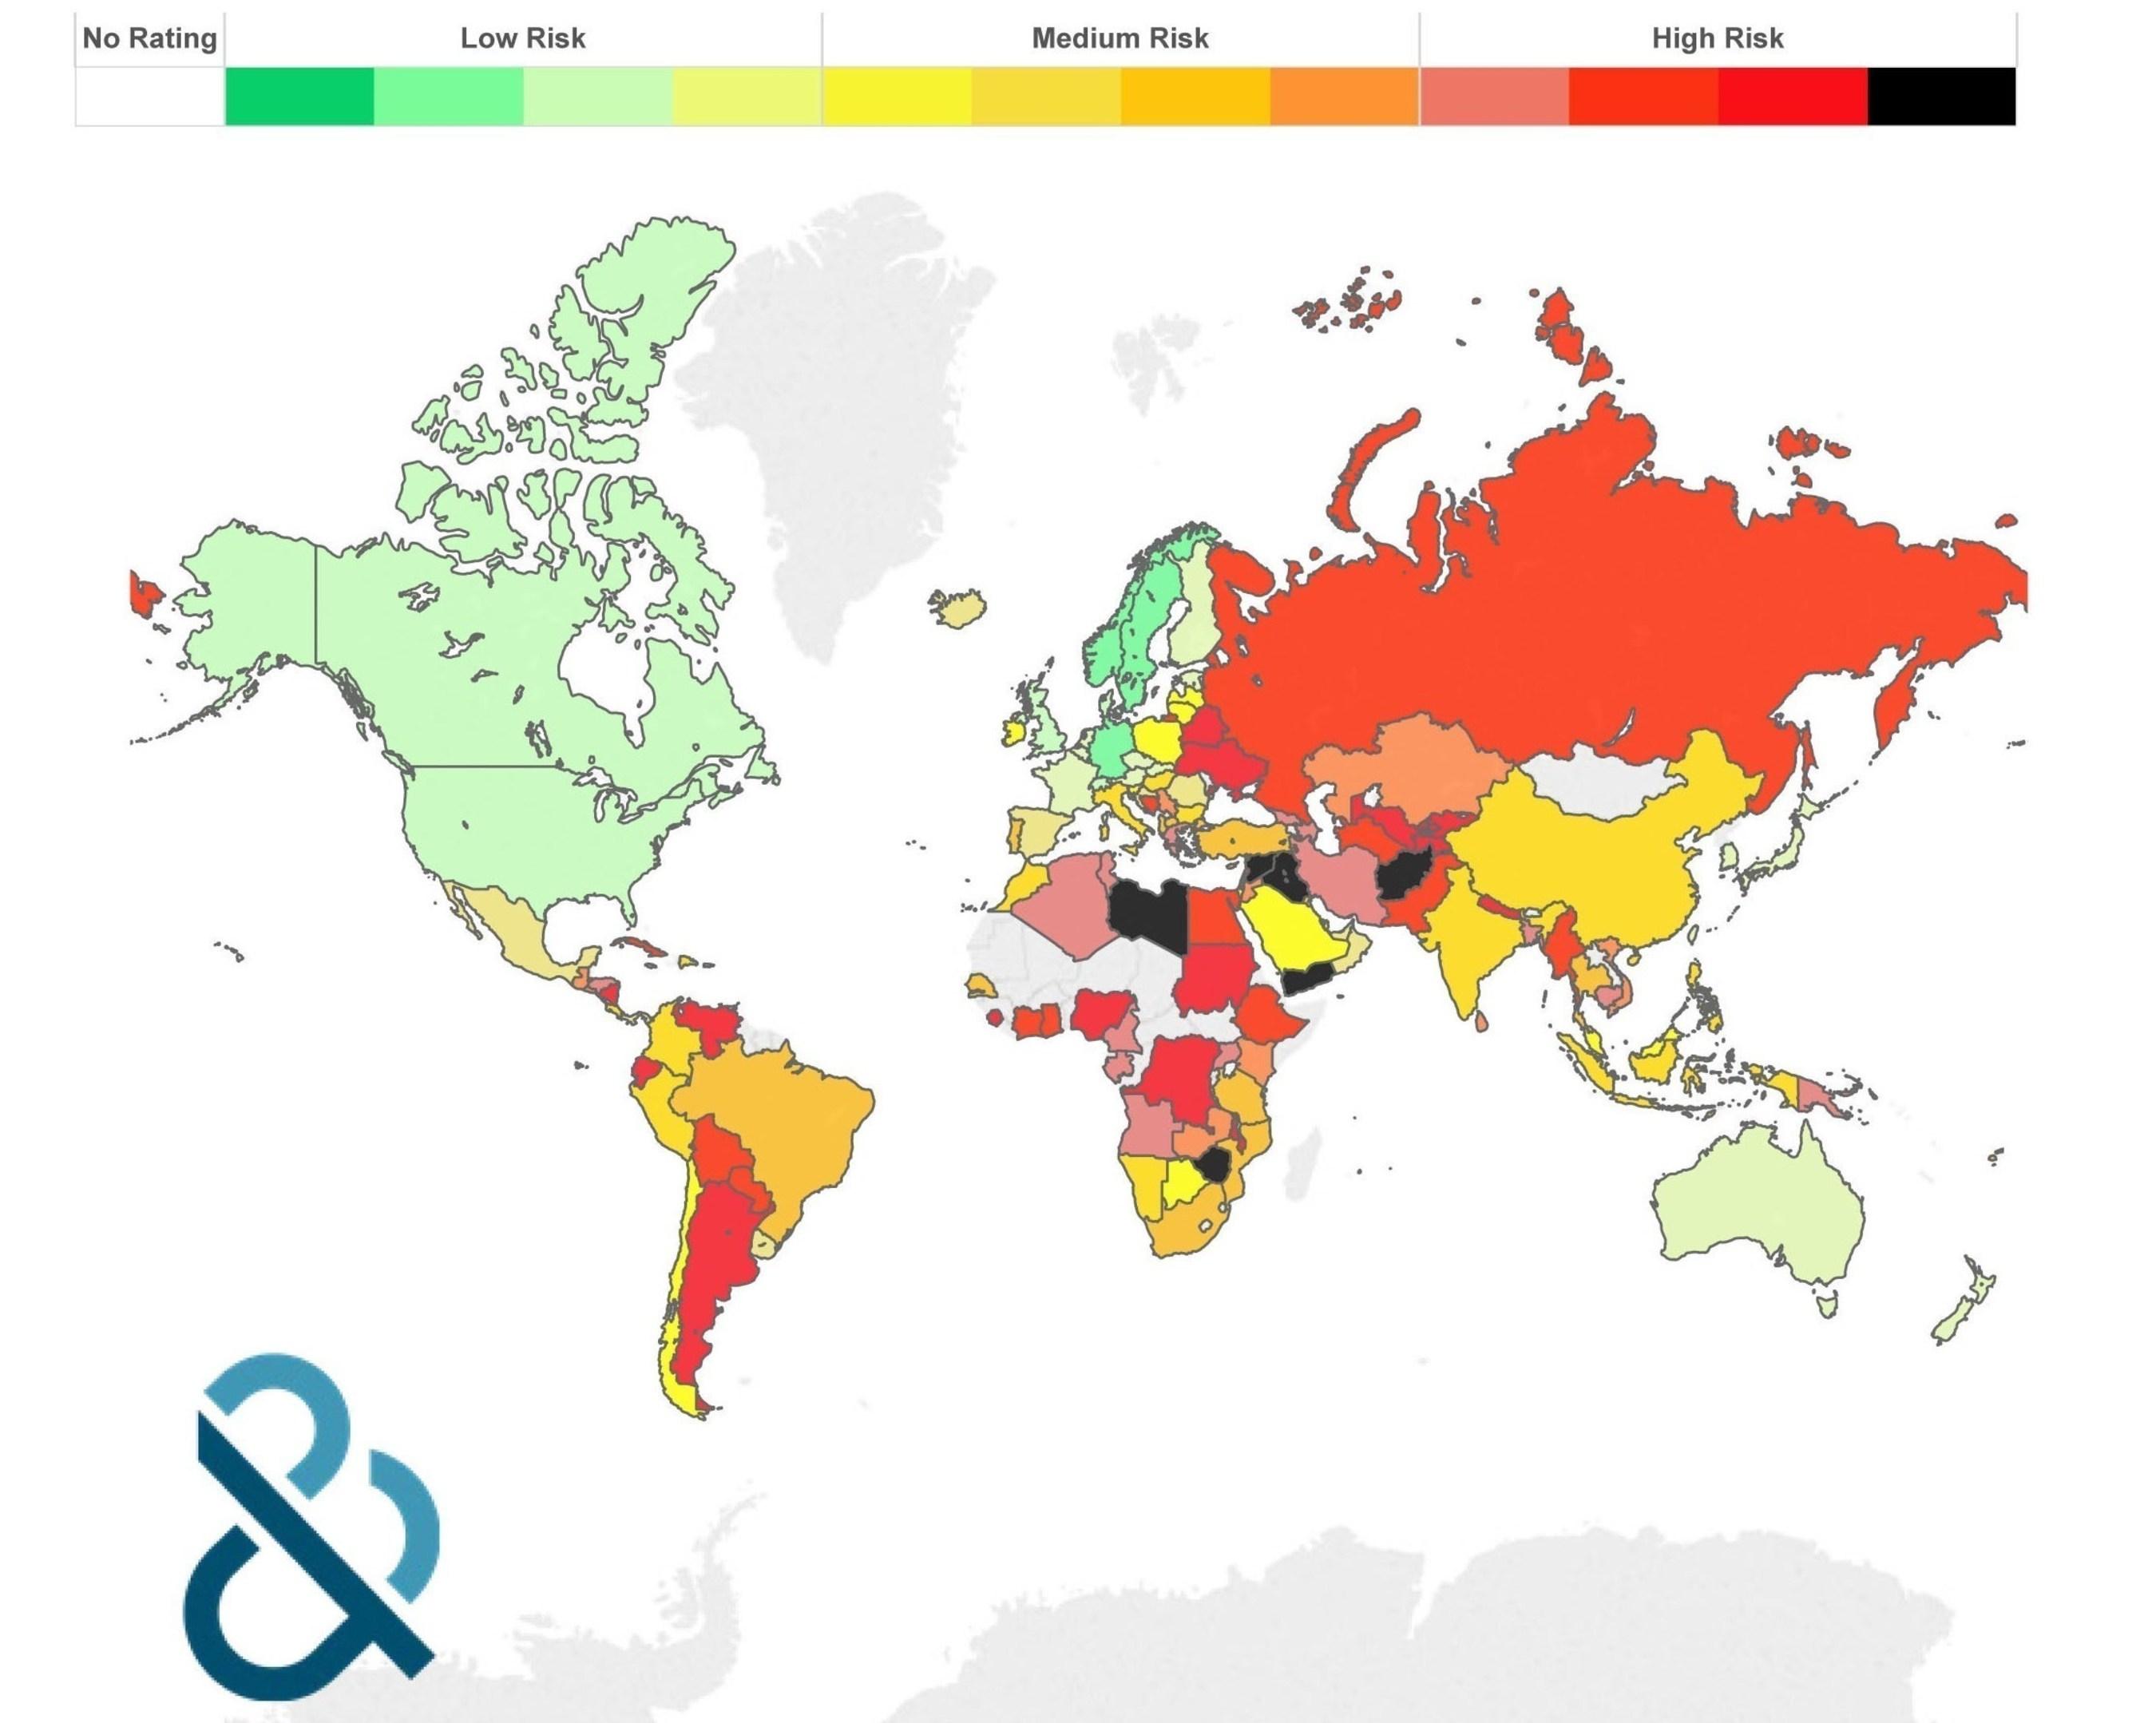 Global supply chain risk in the fourth quarter of 2015